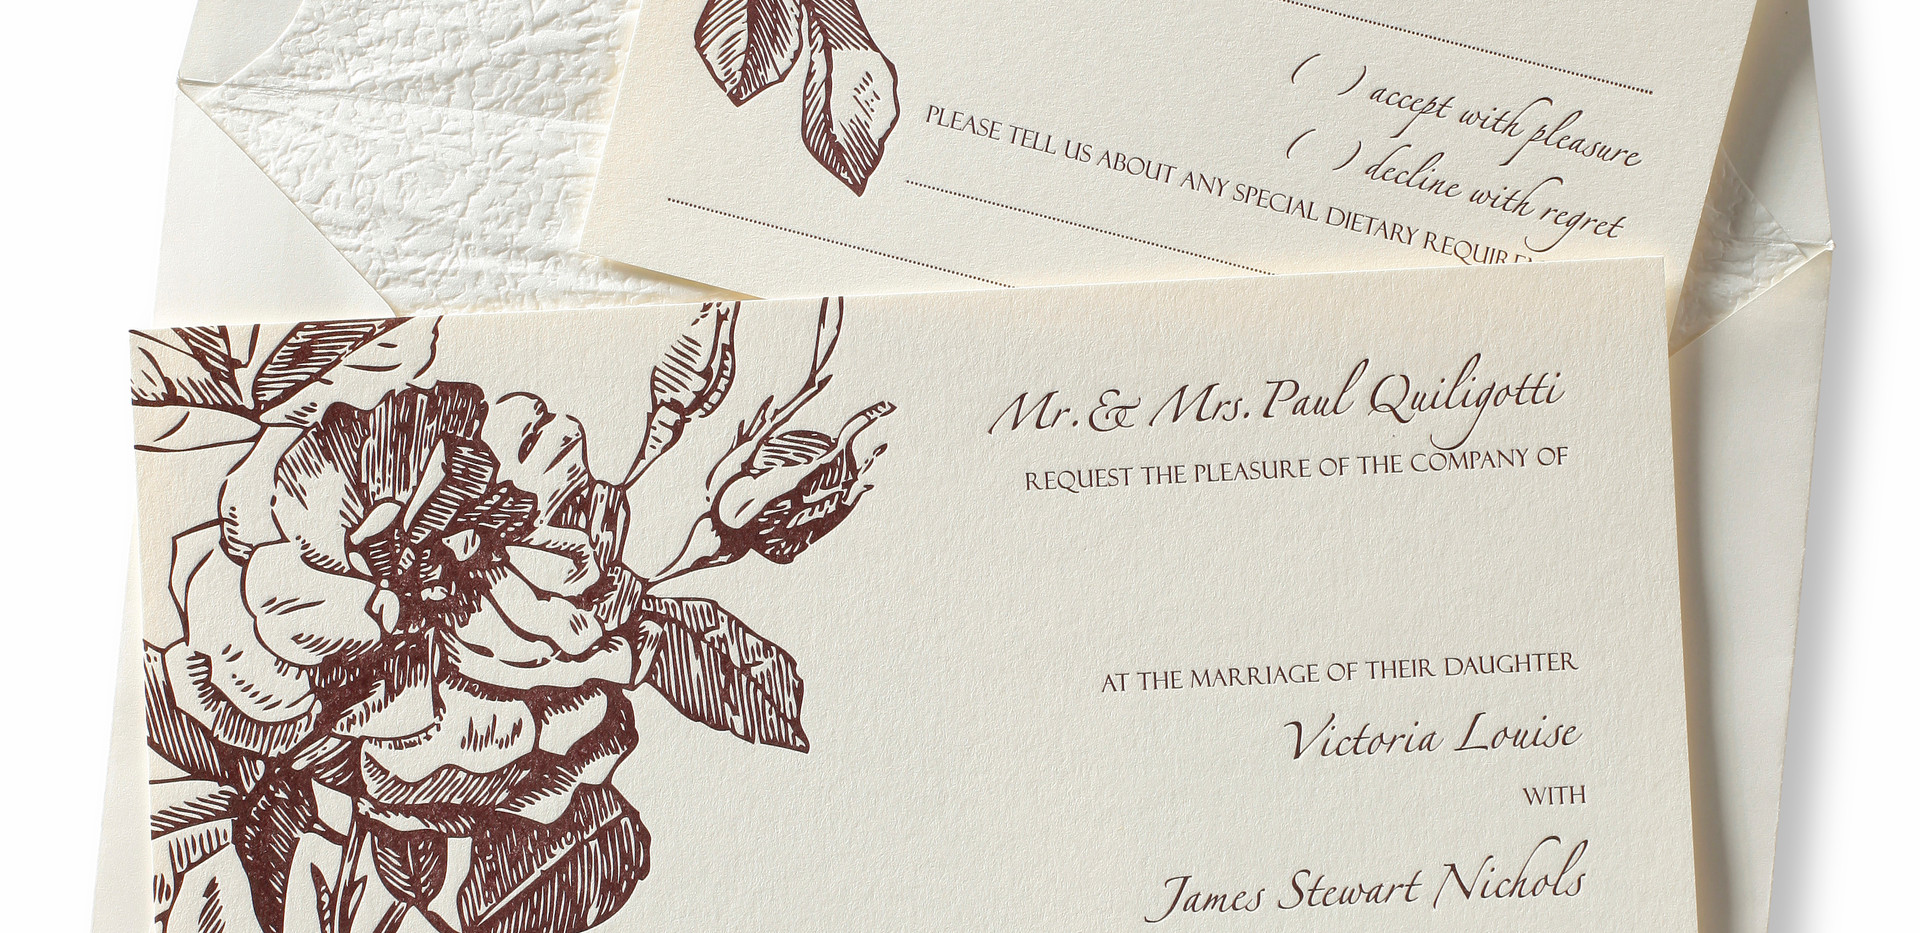 Letterpressed invitation